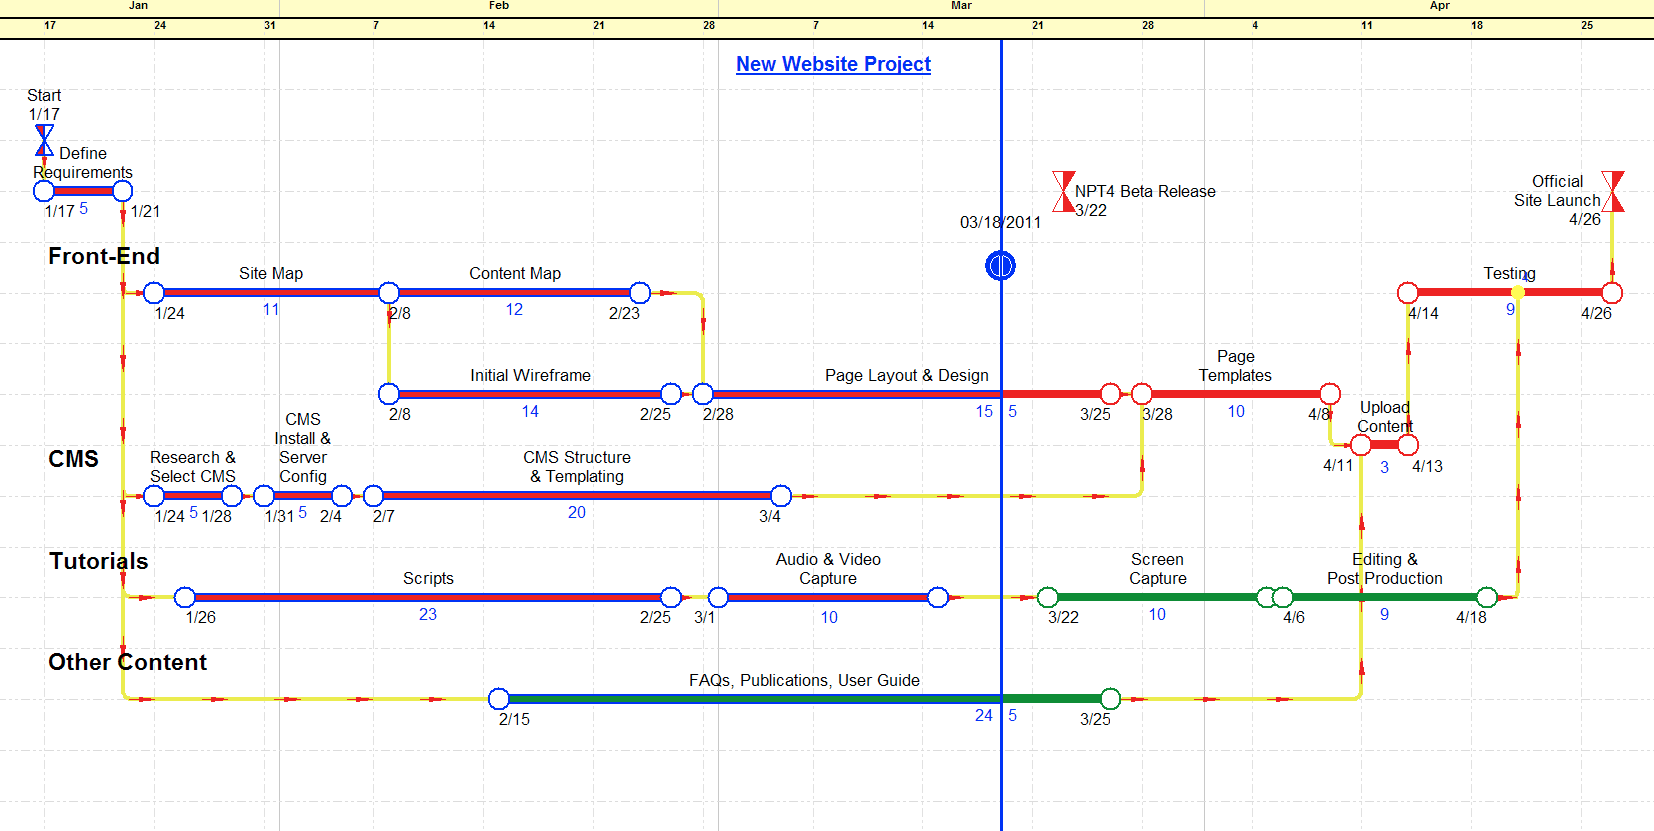 graphical path planning australasian project planning